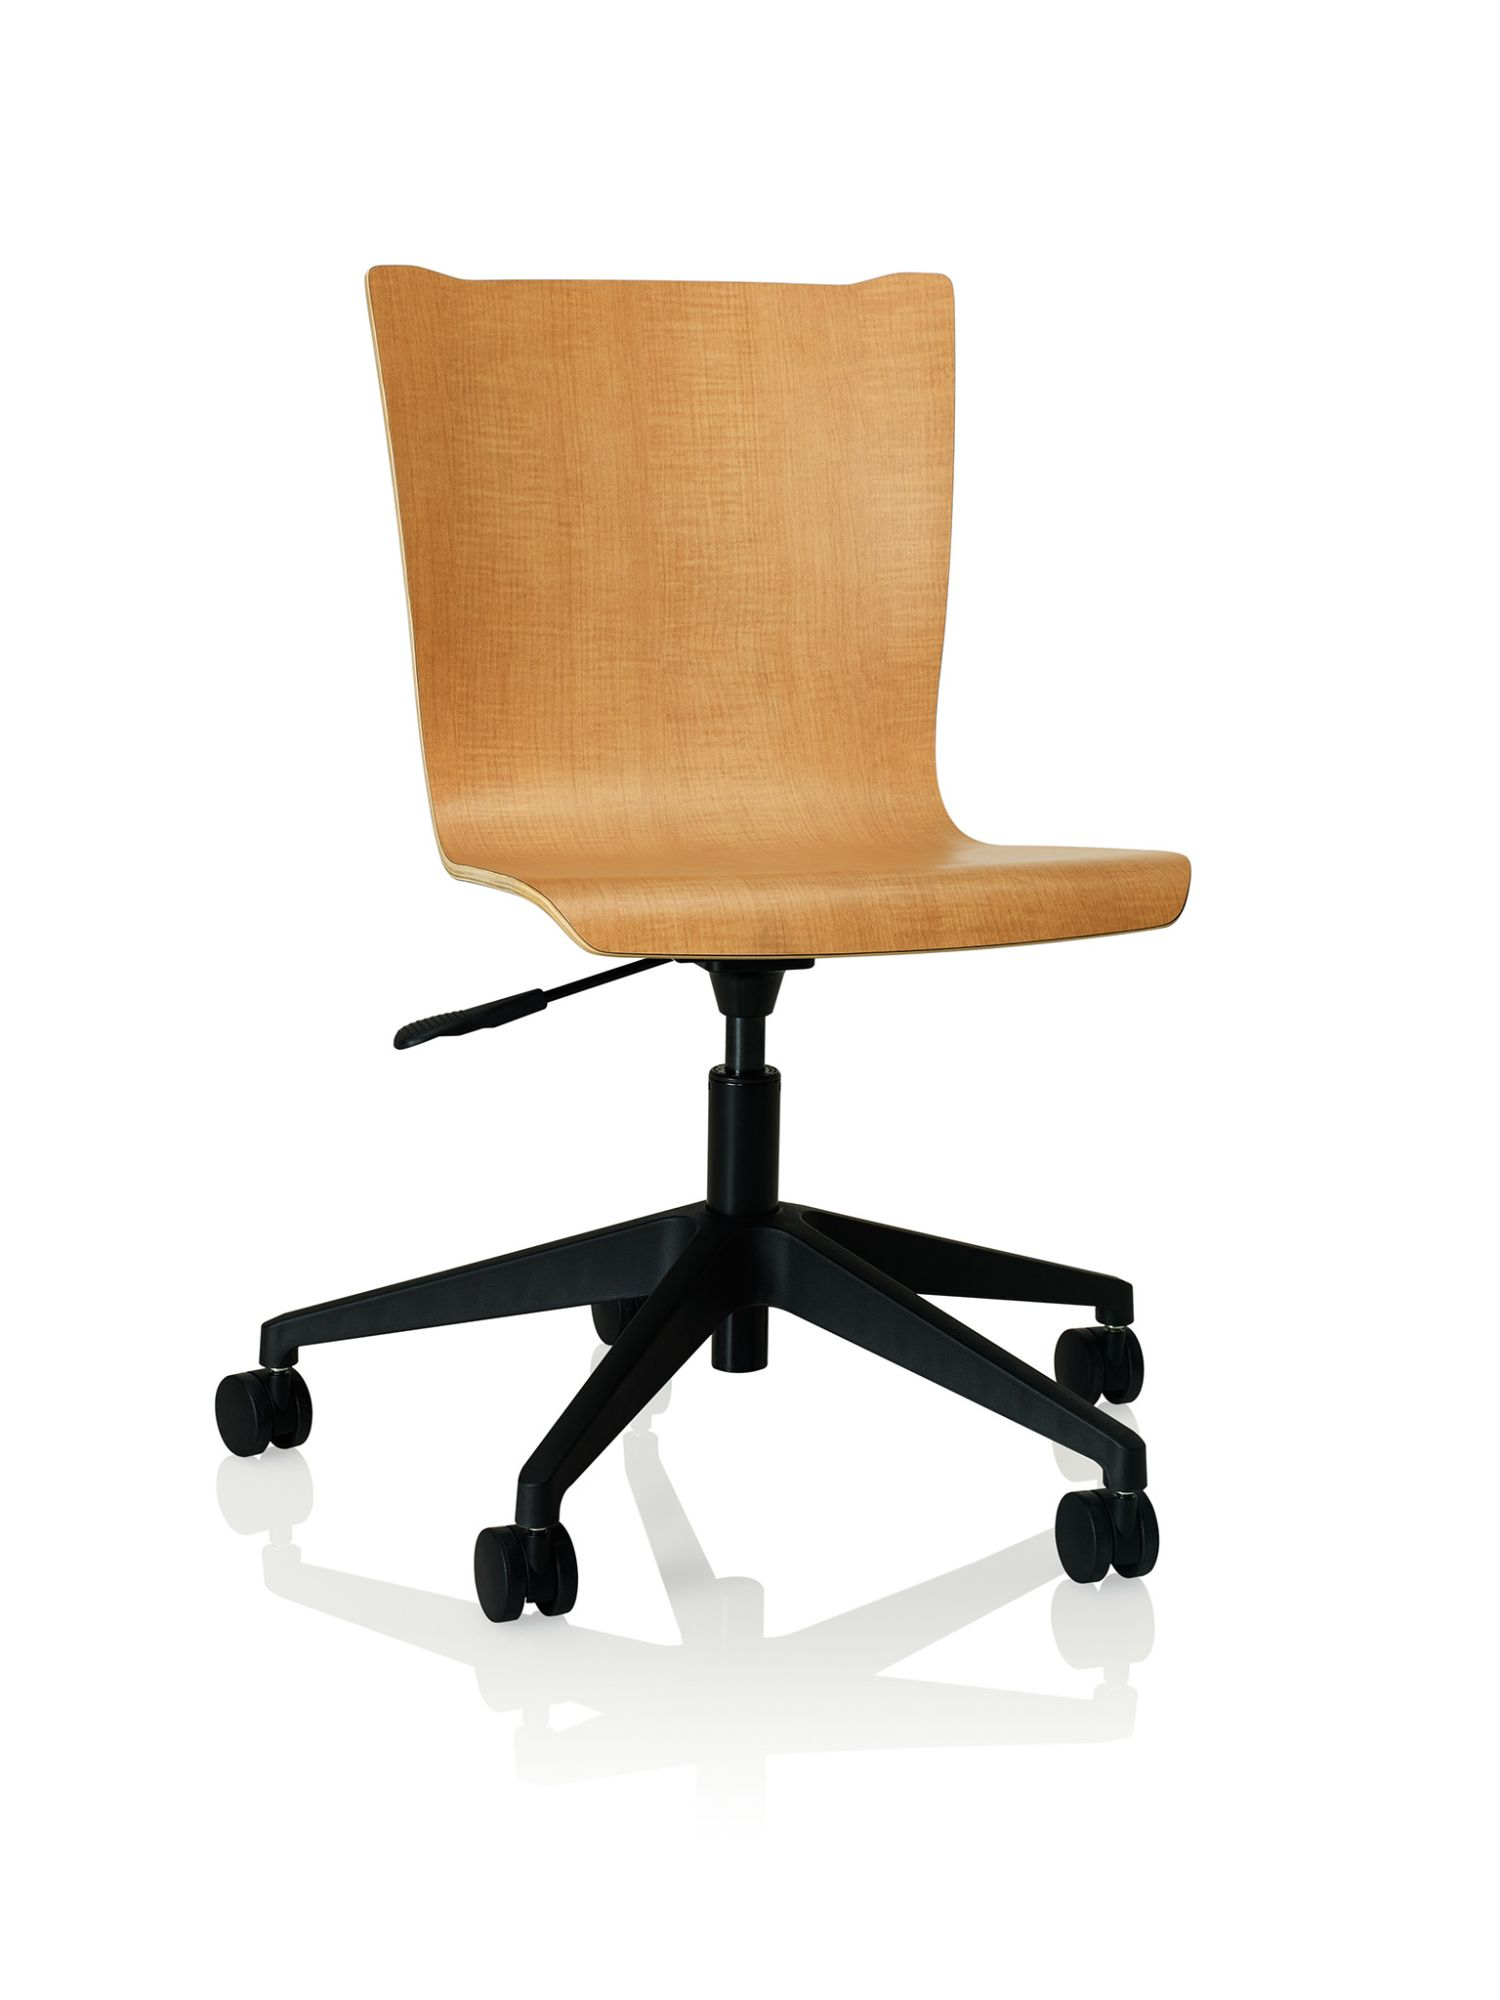 monticello maple apply laminate task chair